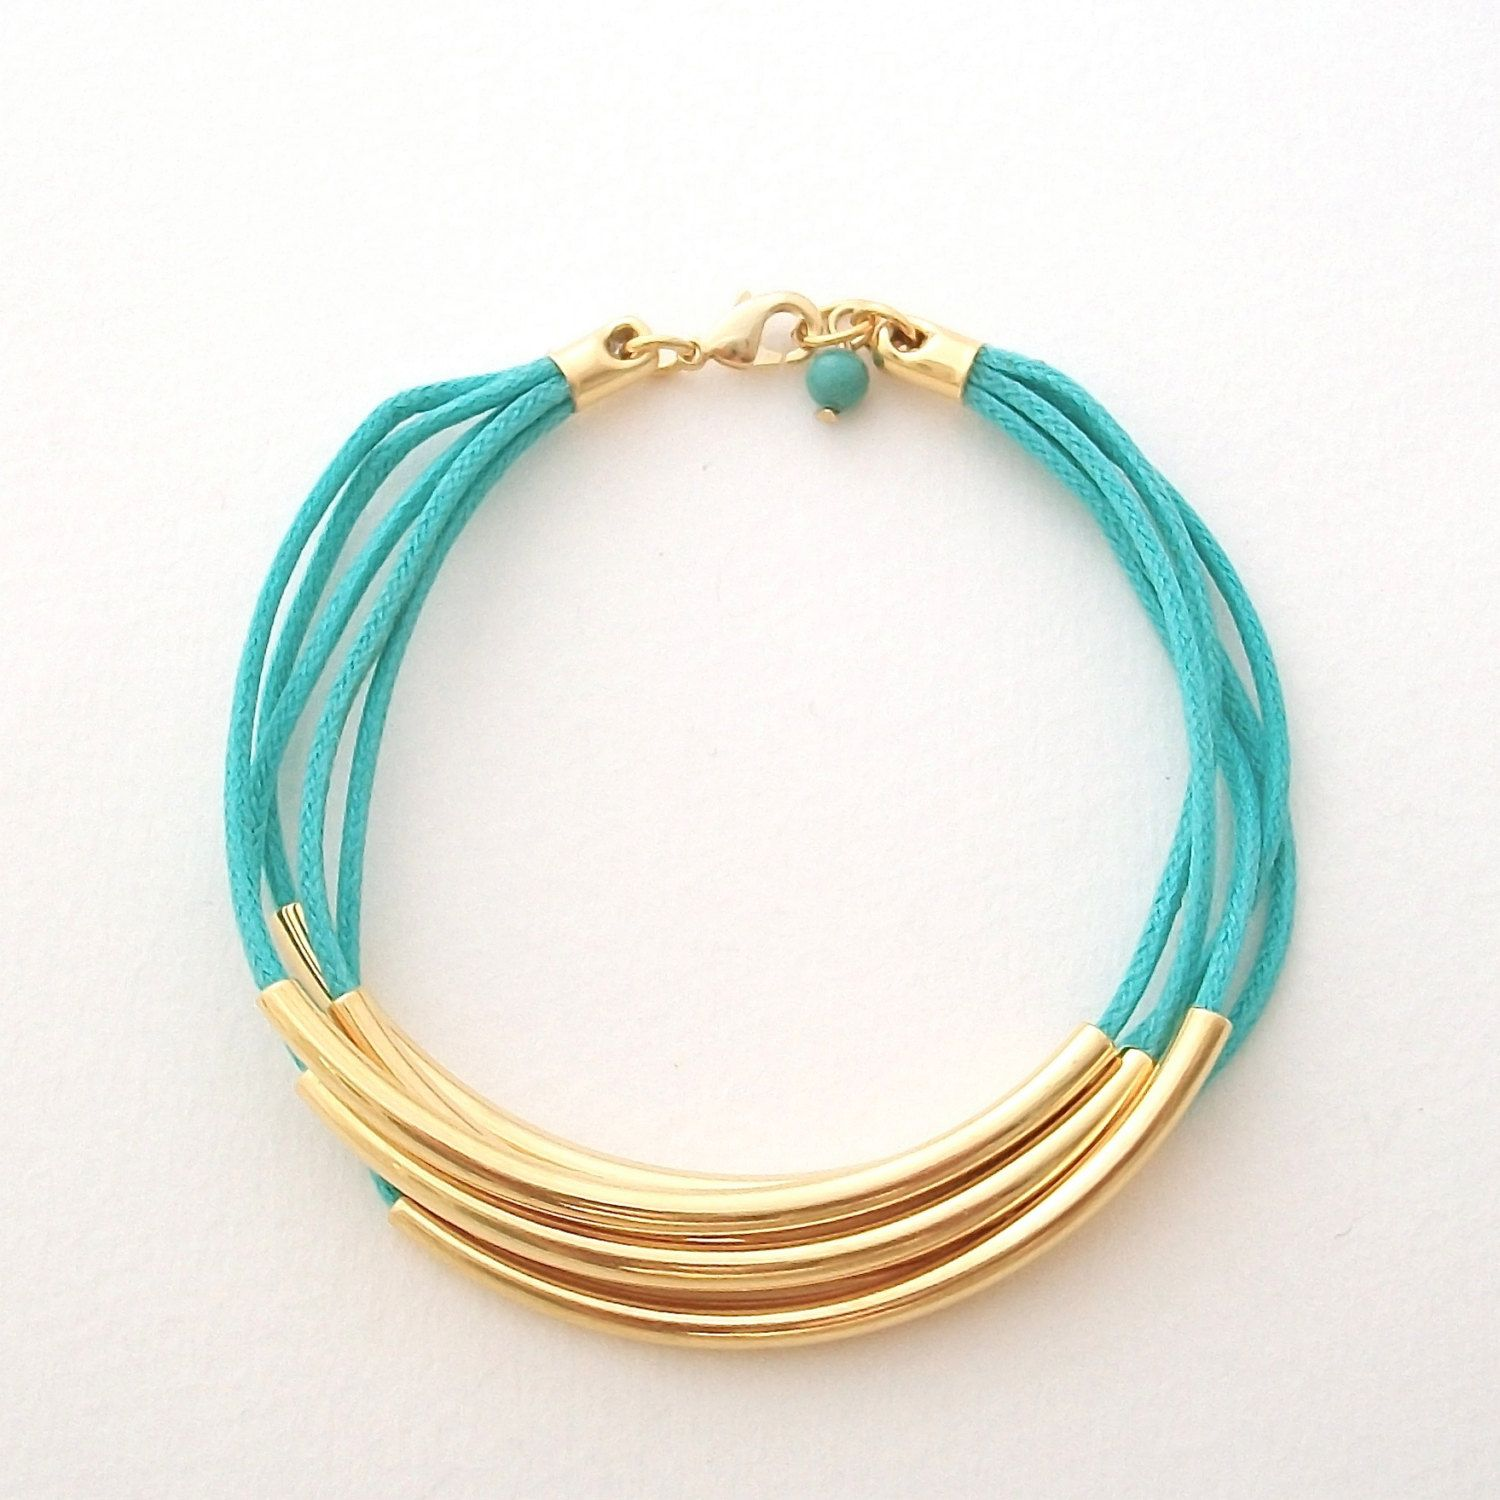 best images about handmade on pinterest turquoise bracelets